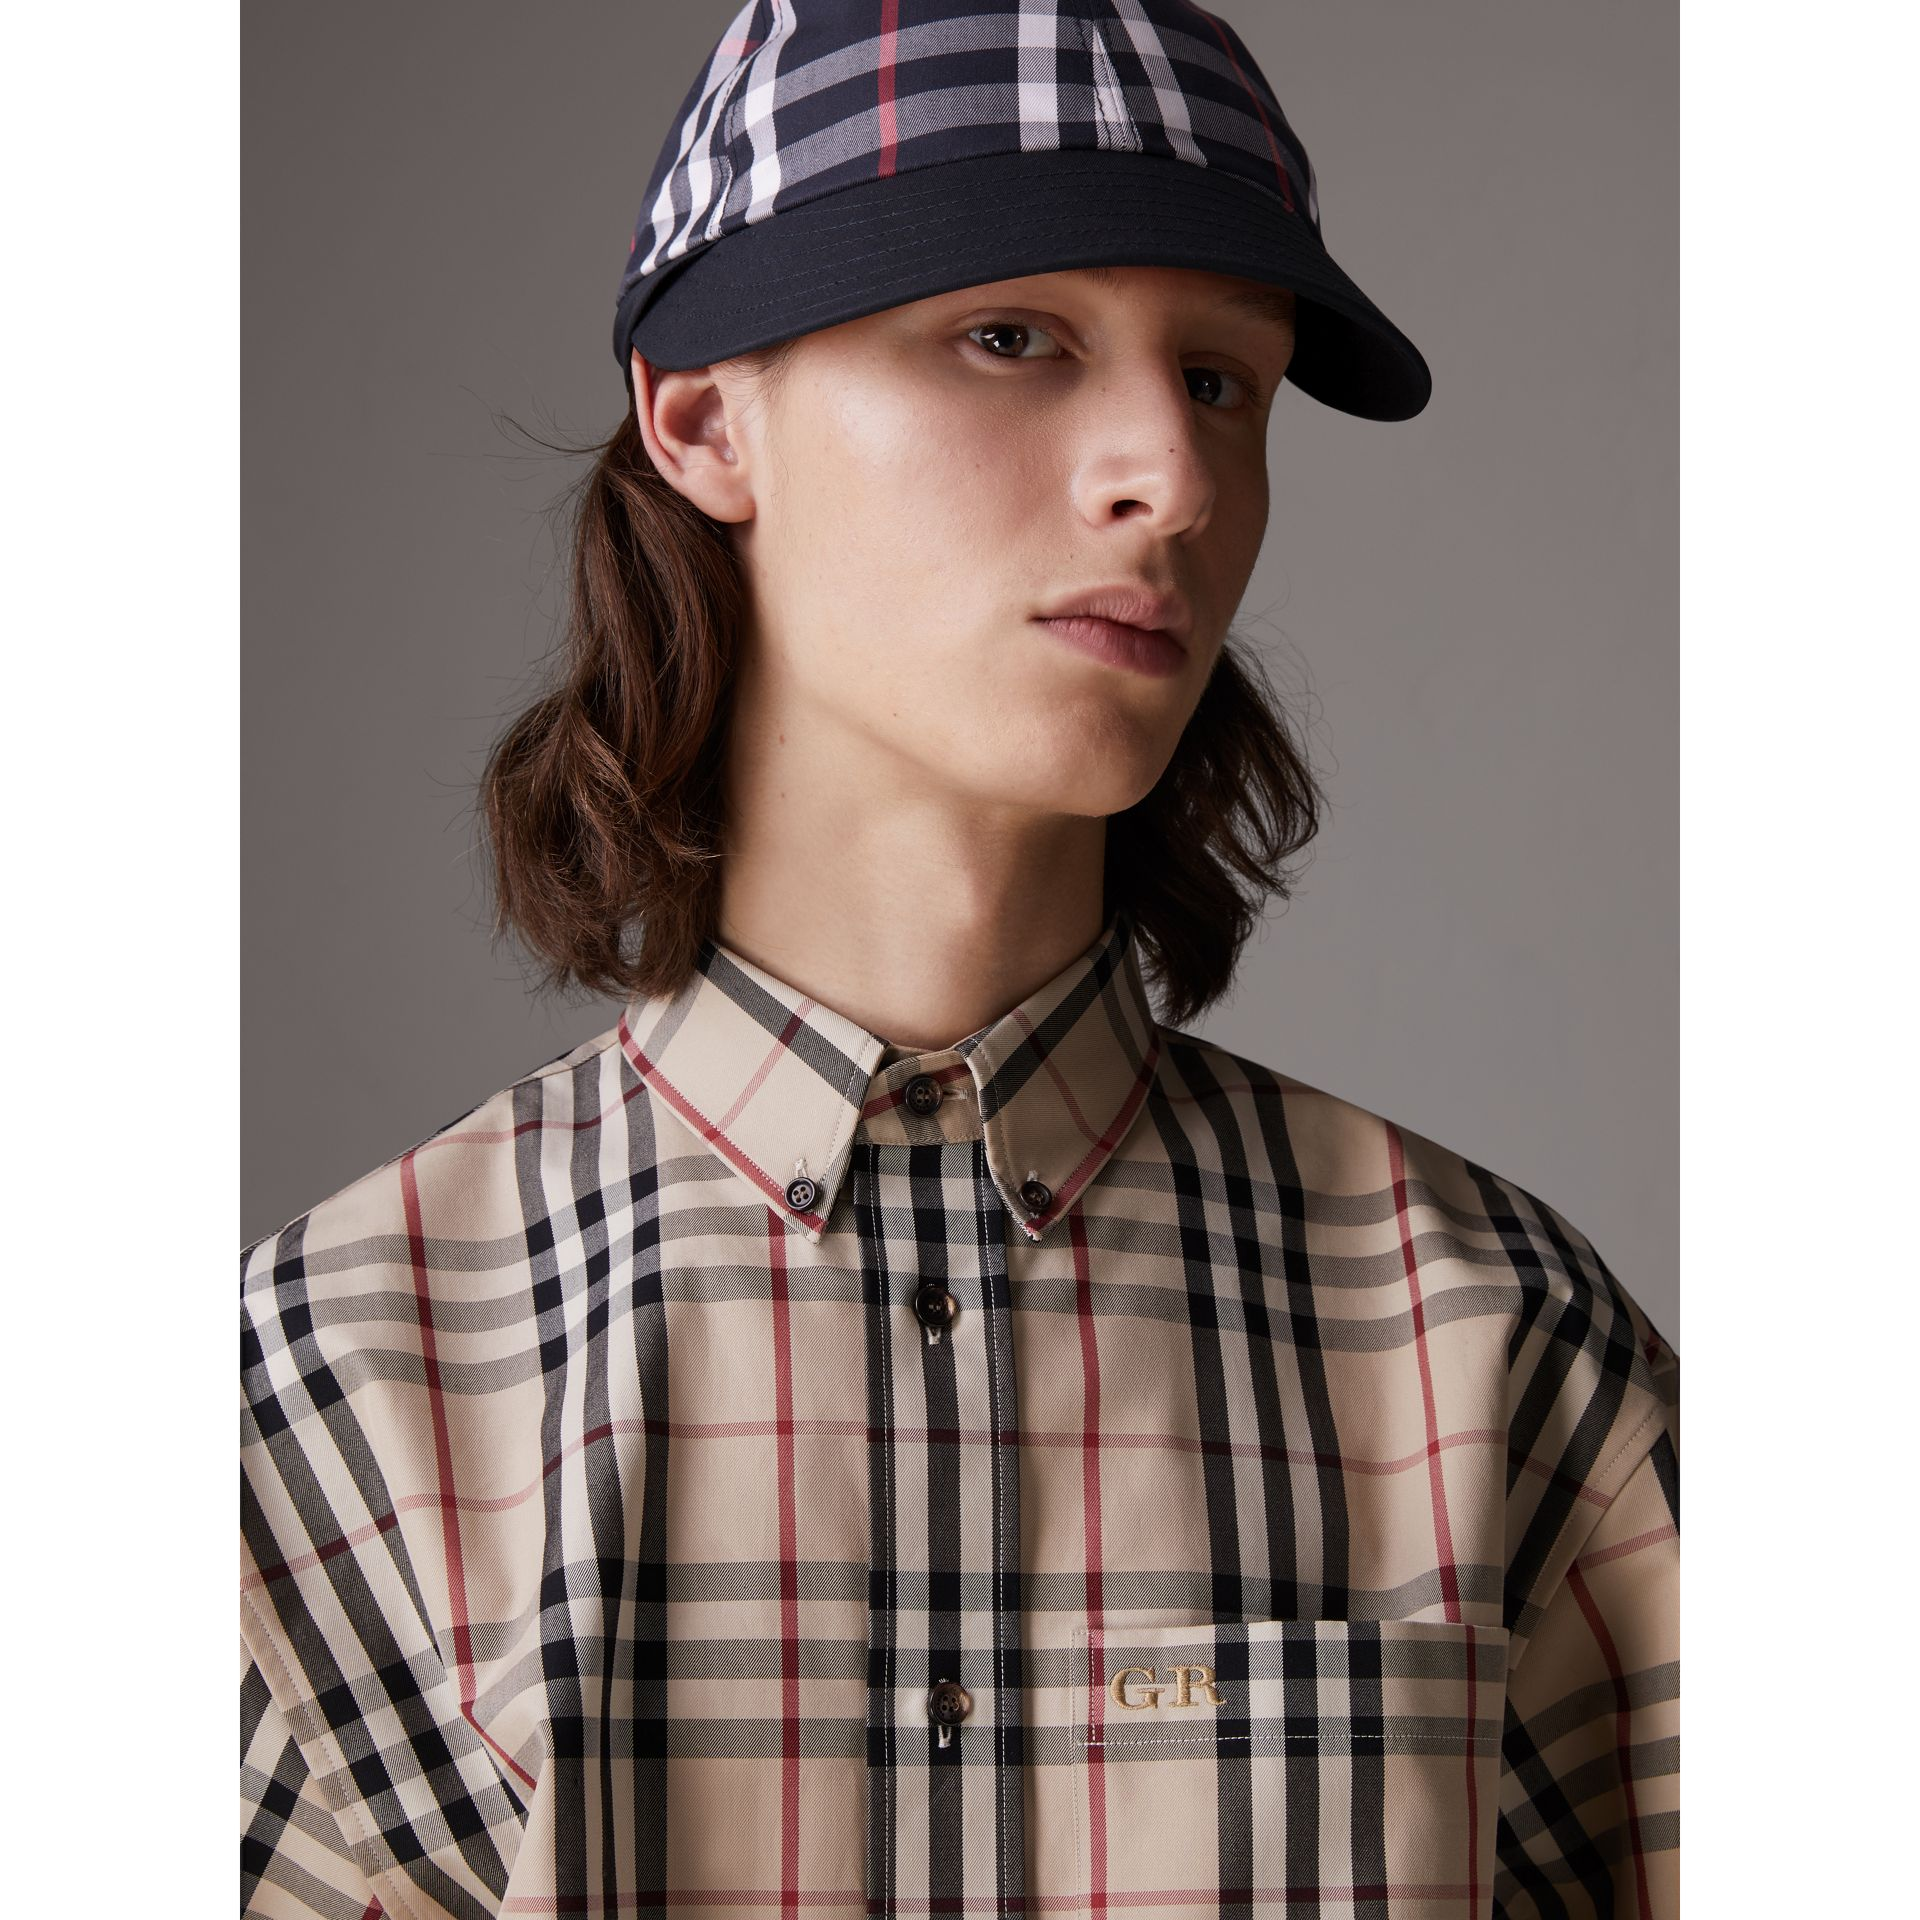 2ec435b6b Gosha x Burberry Baseball Cap by Burberry